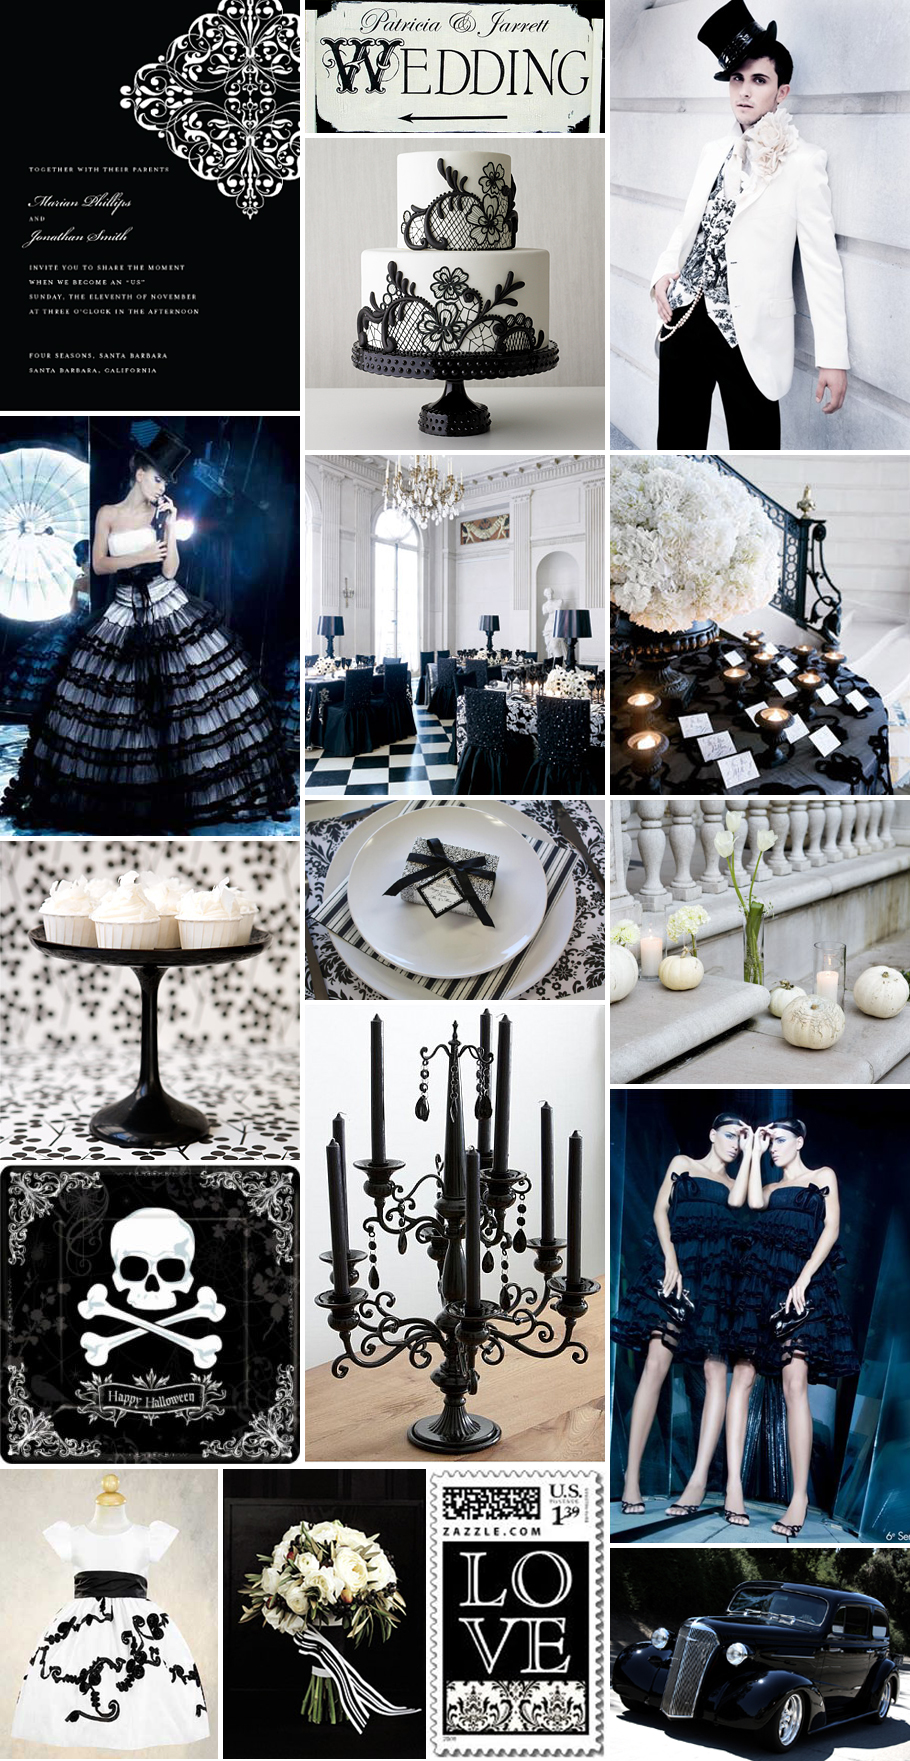 Inspiration Board: A Posh Halloween Wedding in Black & White